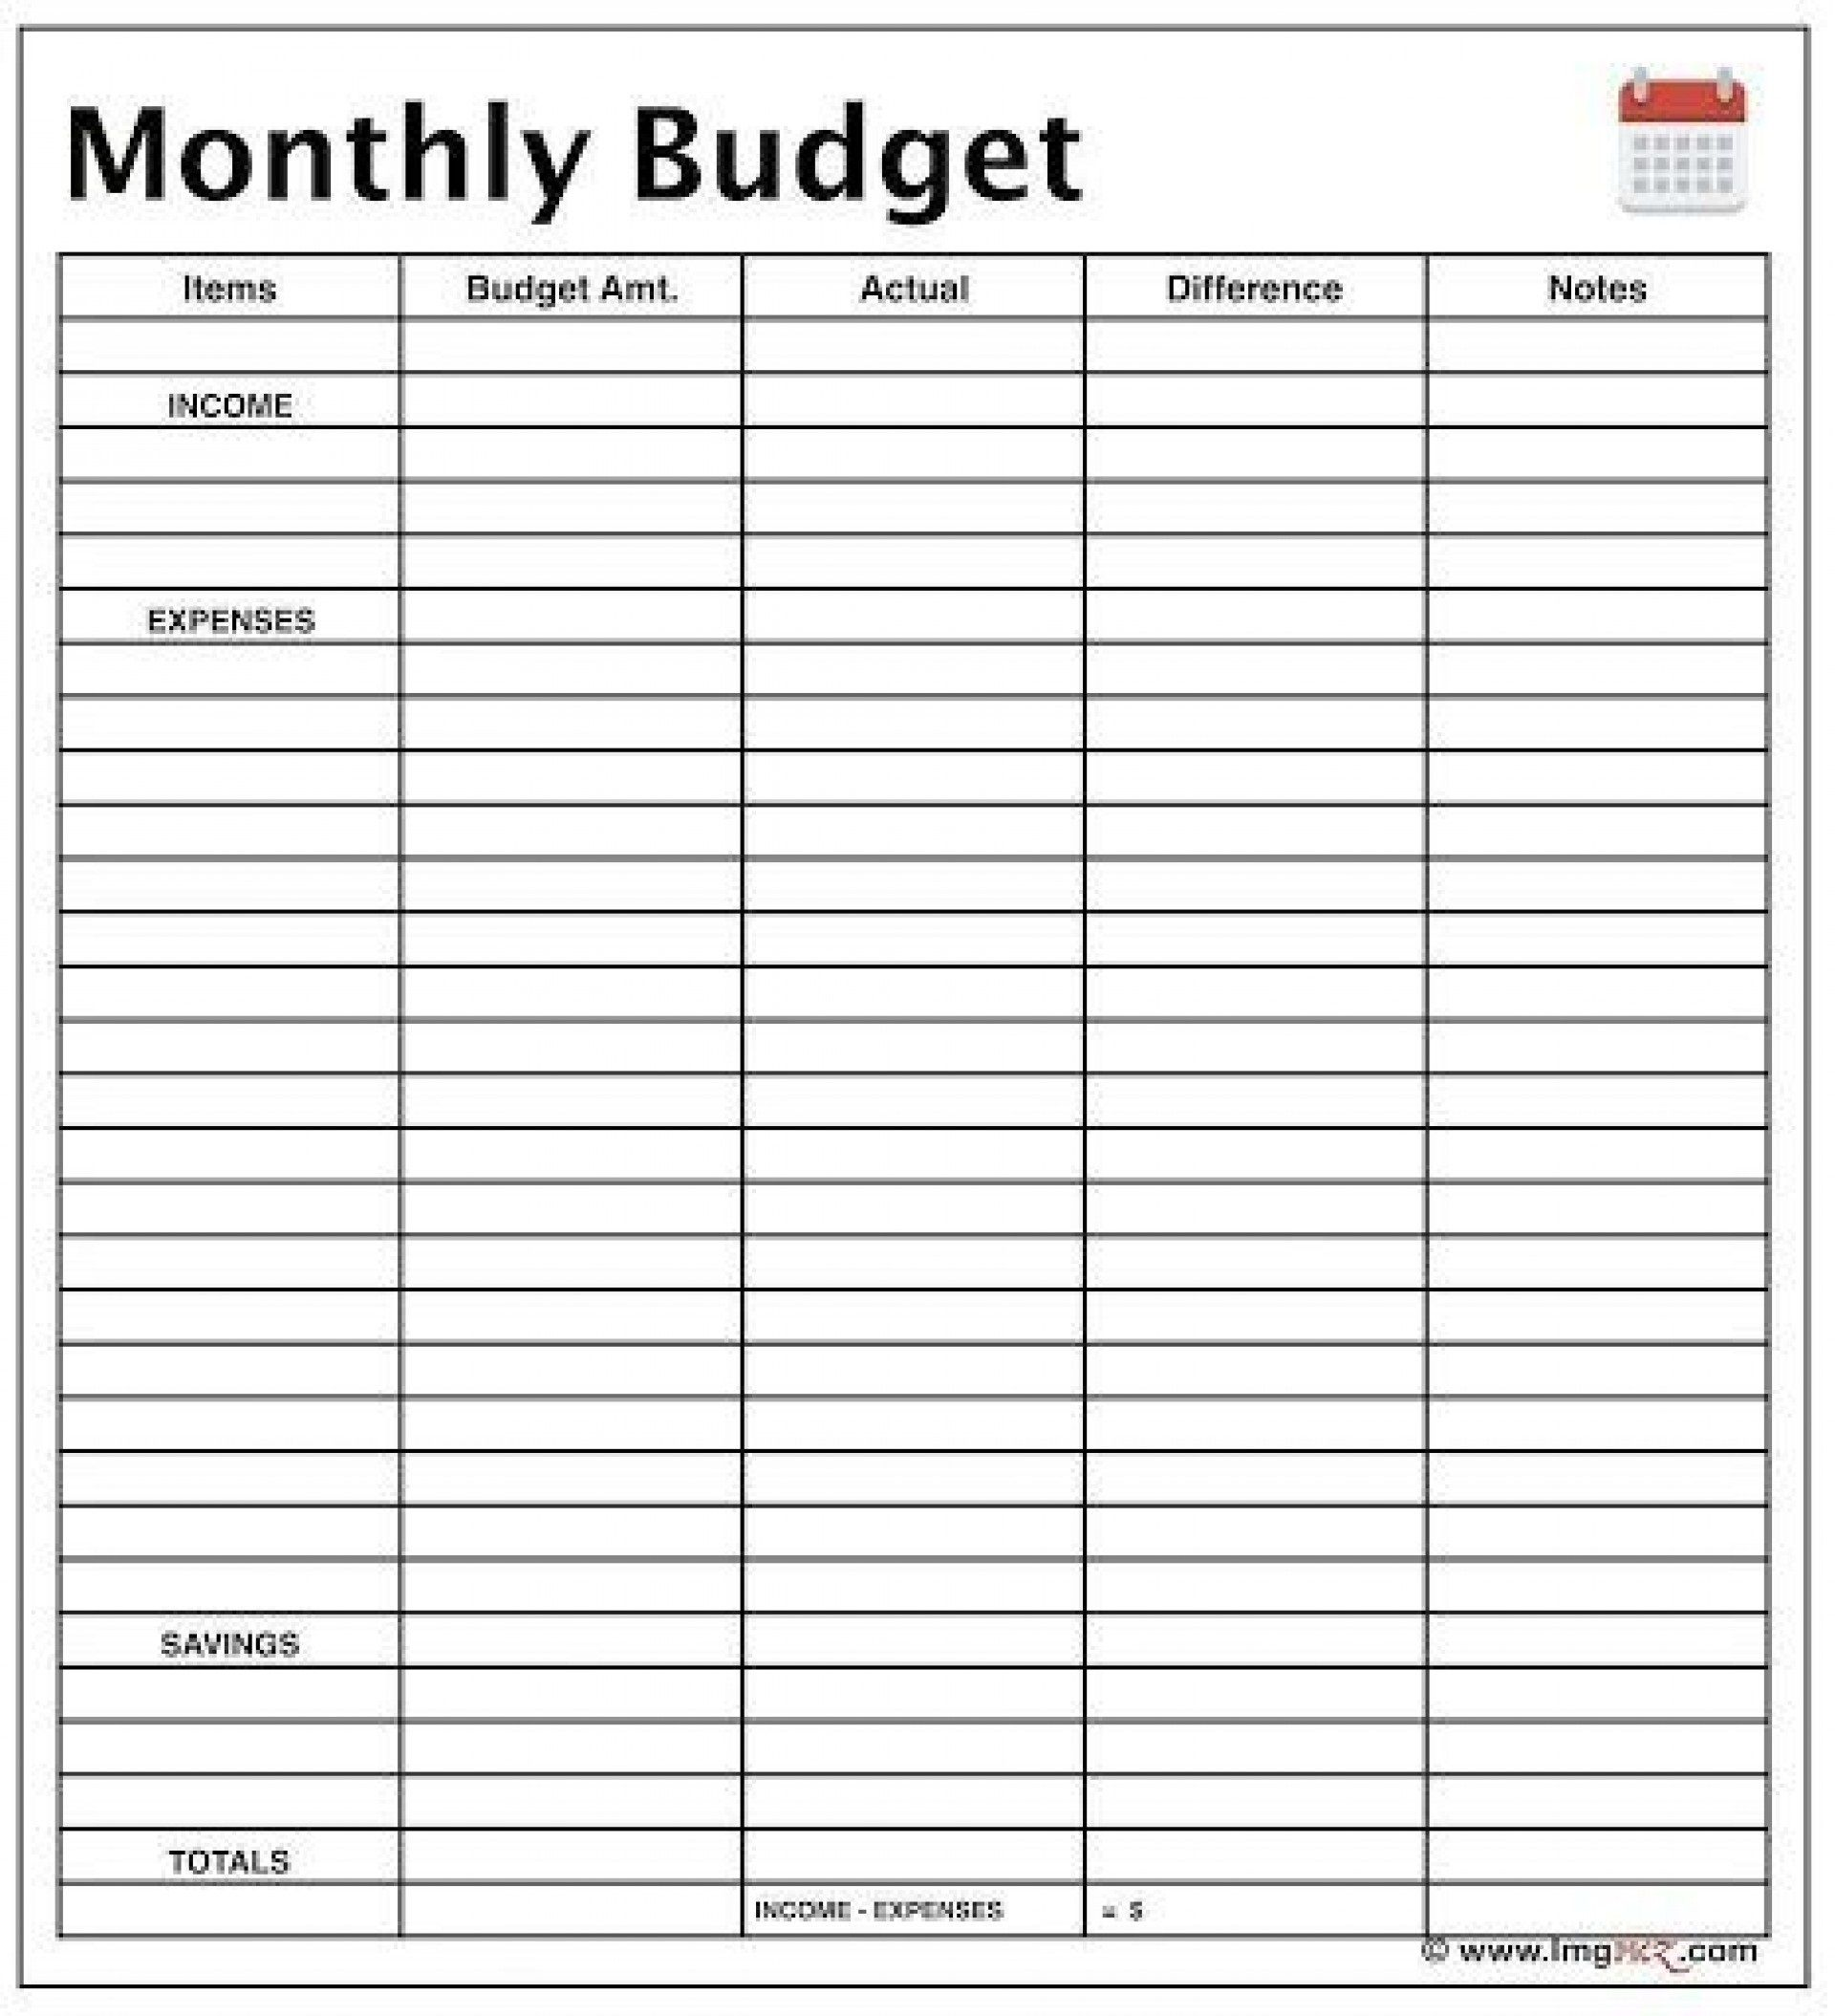 Printable Monthly Budget Form Addictionary